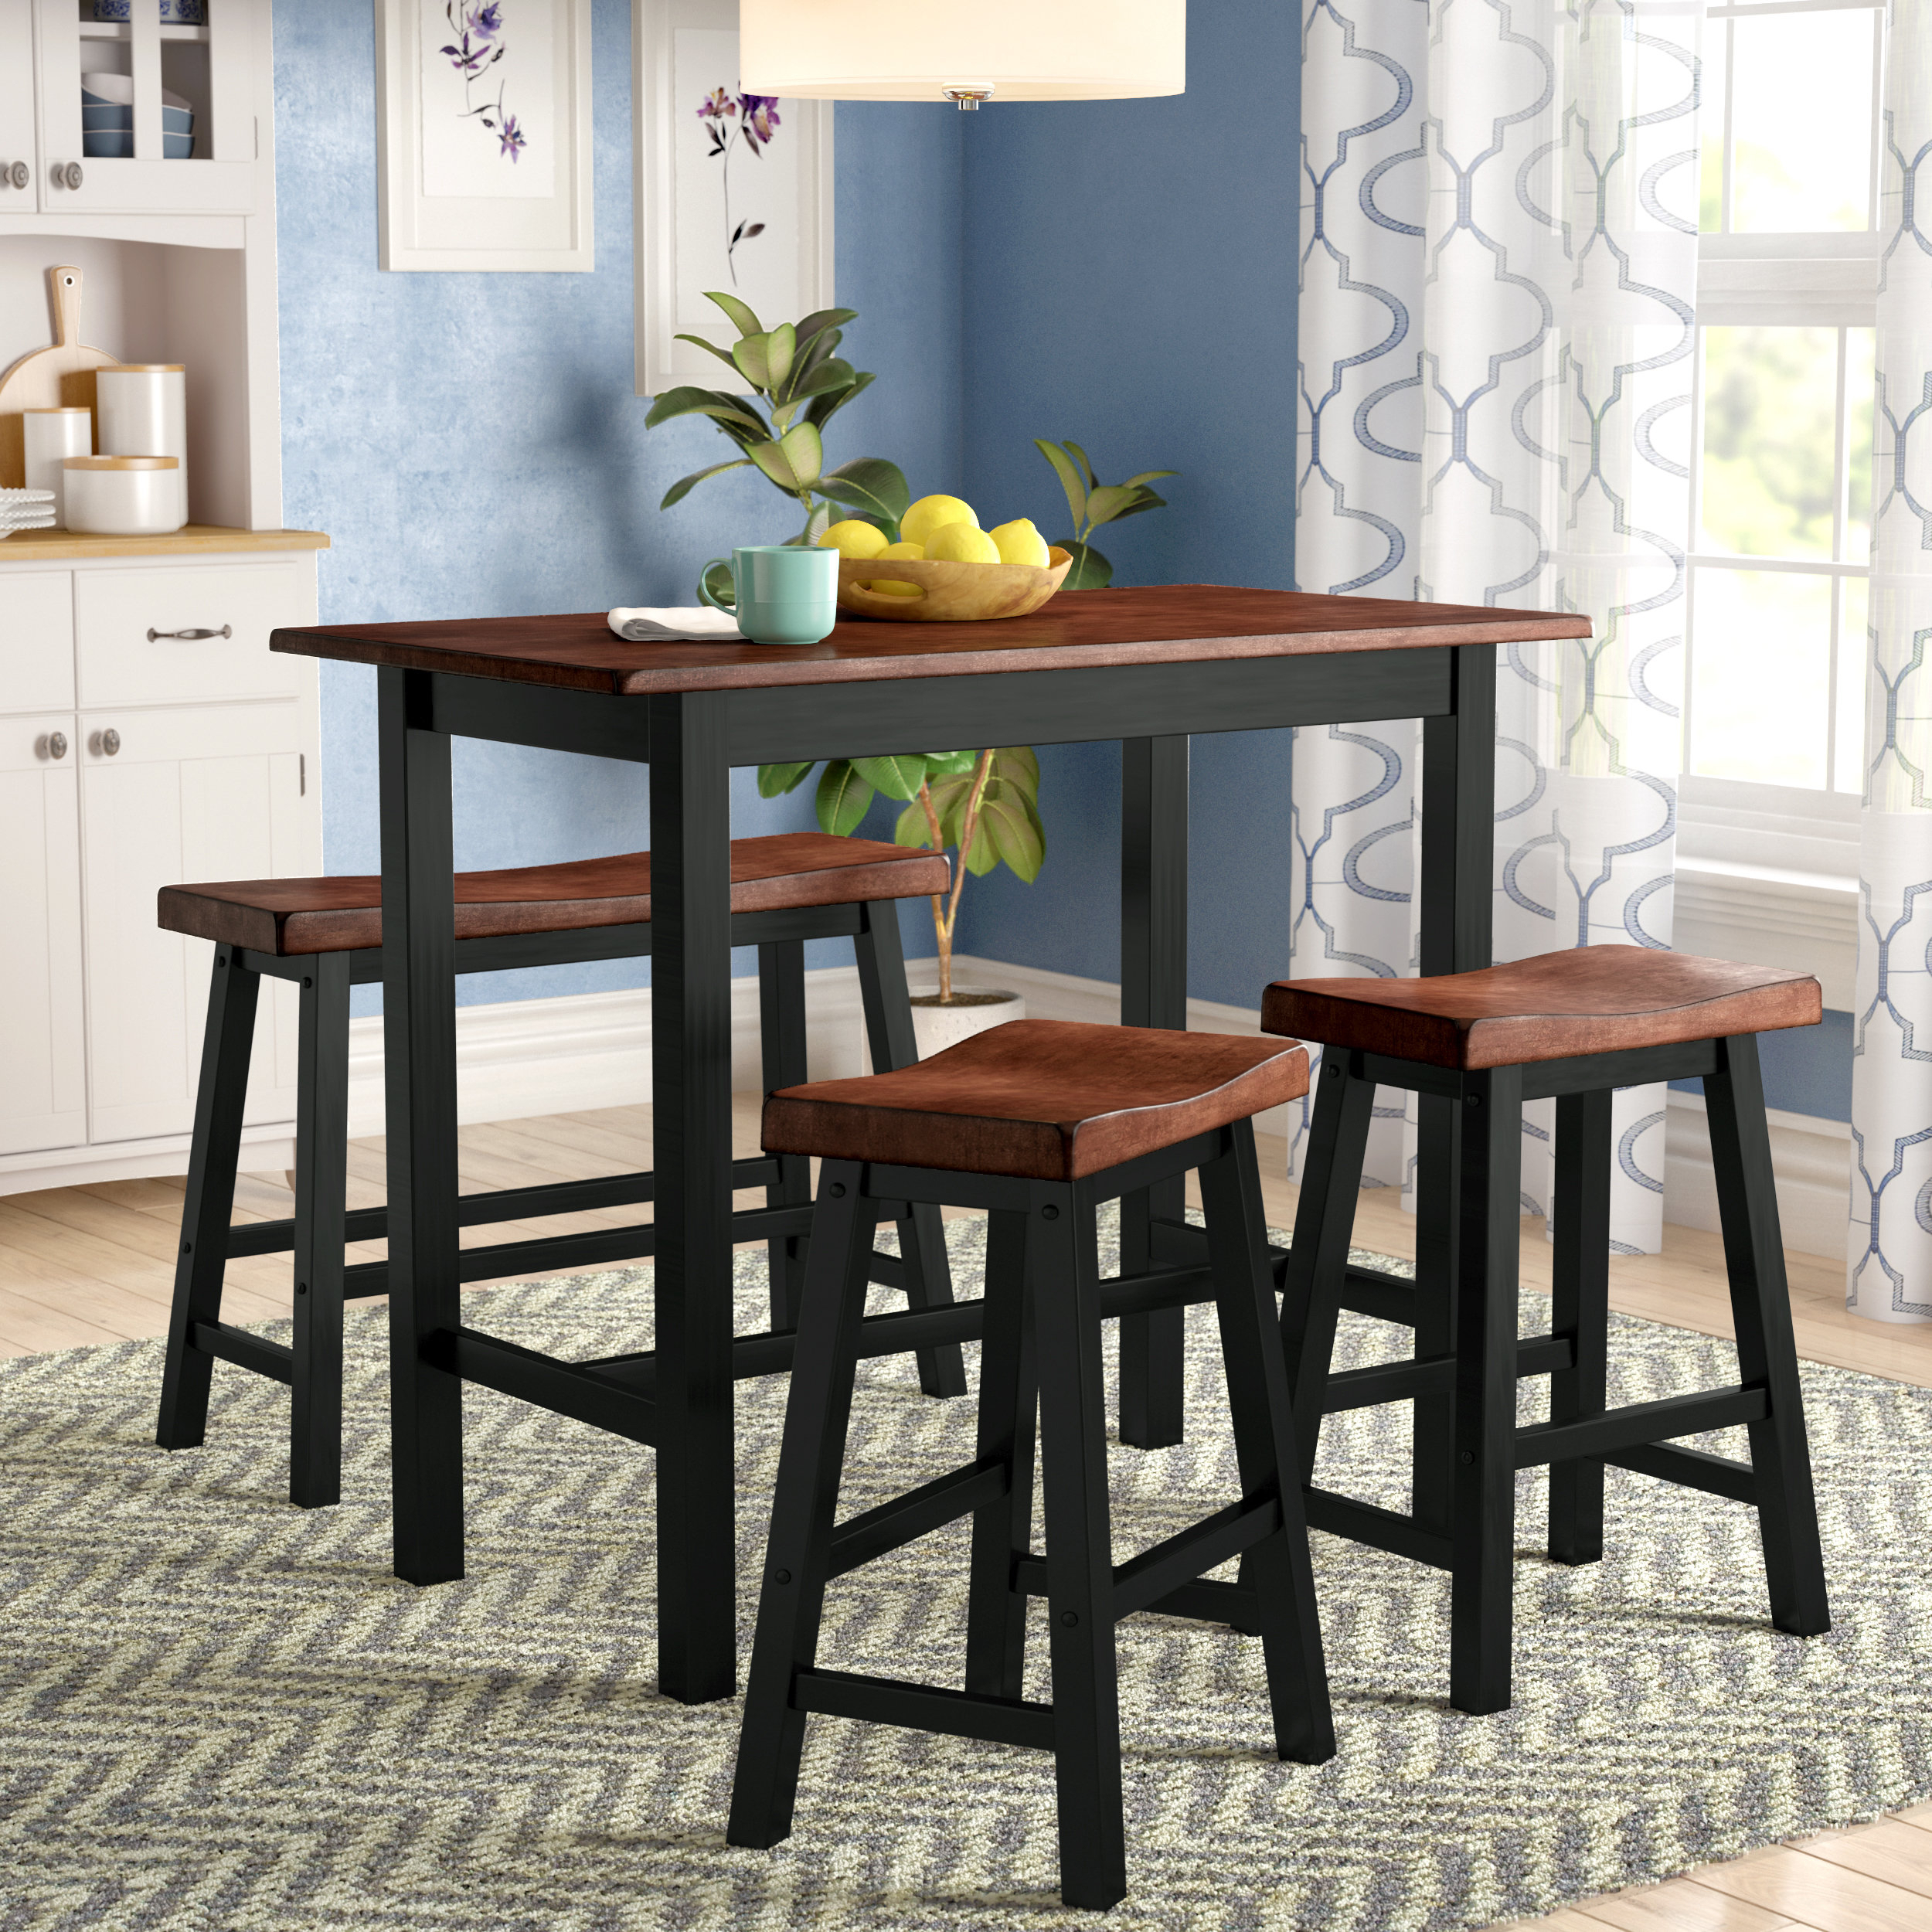 Red Barrel Studio Opal 4 Piece Counter Height Dining Set & Reviews For Well Known Kerley 4 Piece Dining Sets (#17 of 20)